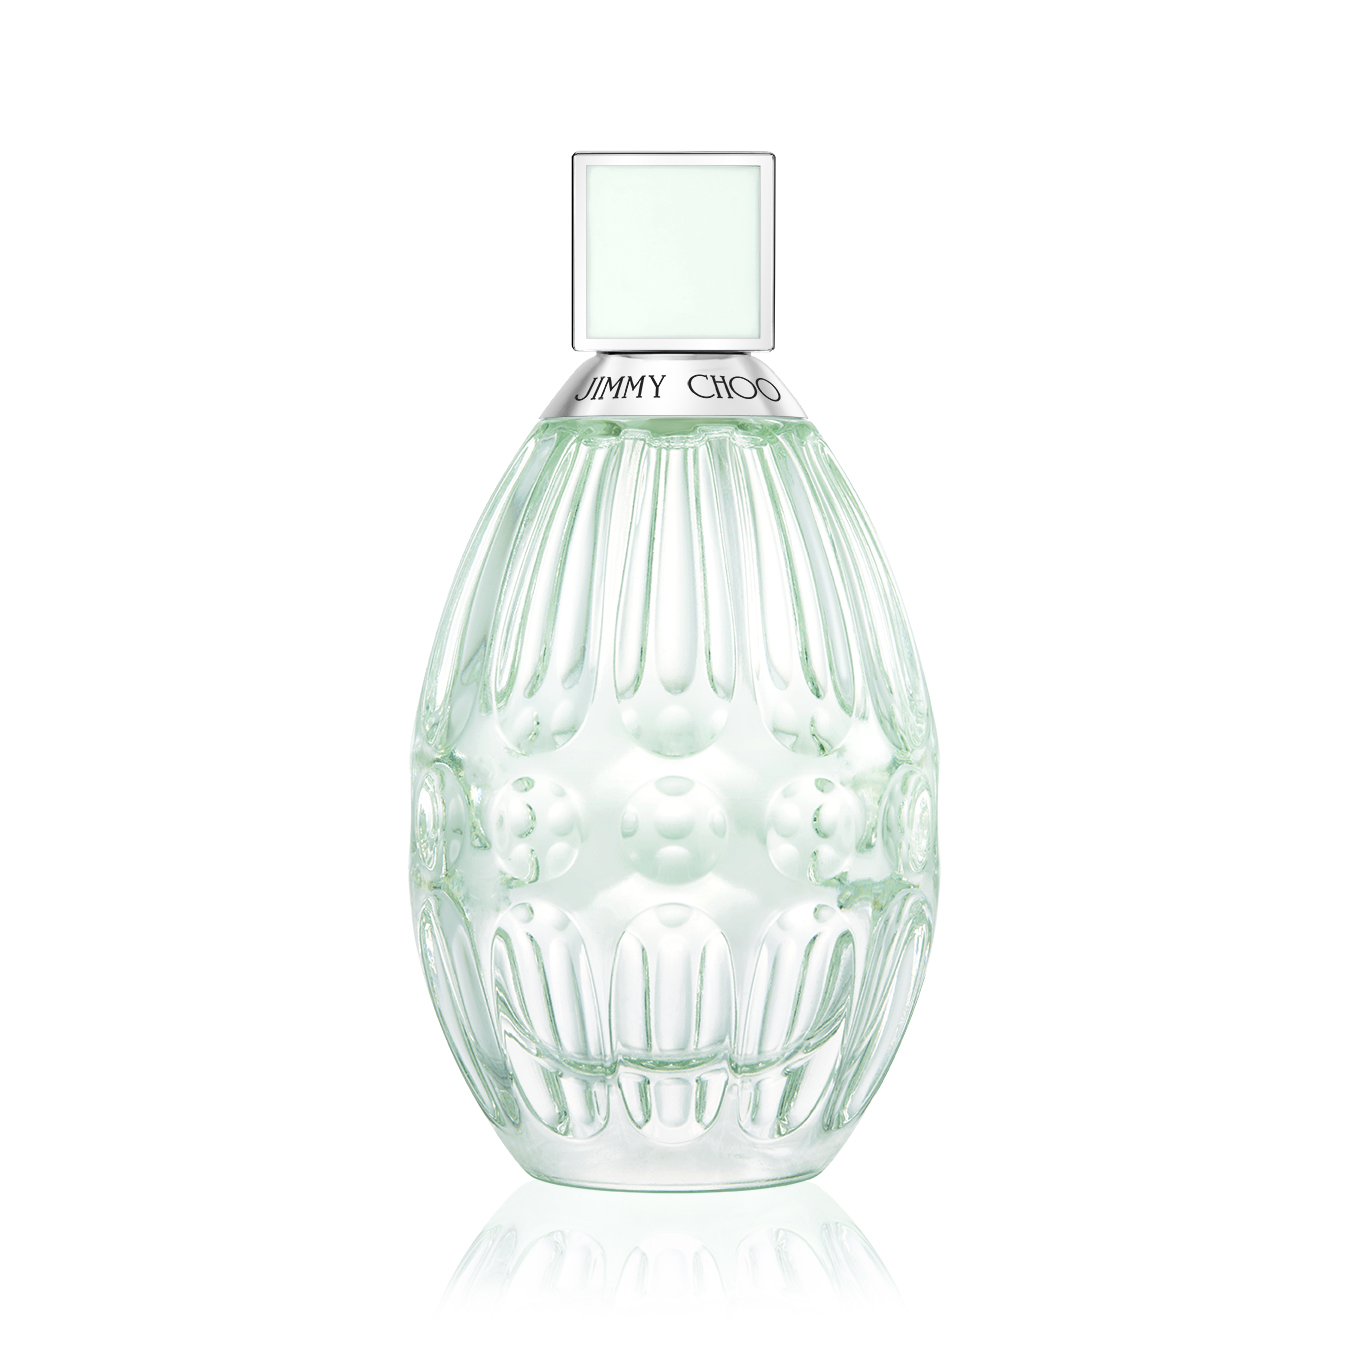 JIMMY CHOO_FLORAL_90ML_BOTTLE_FRONT VIEW_£66.00.jpg